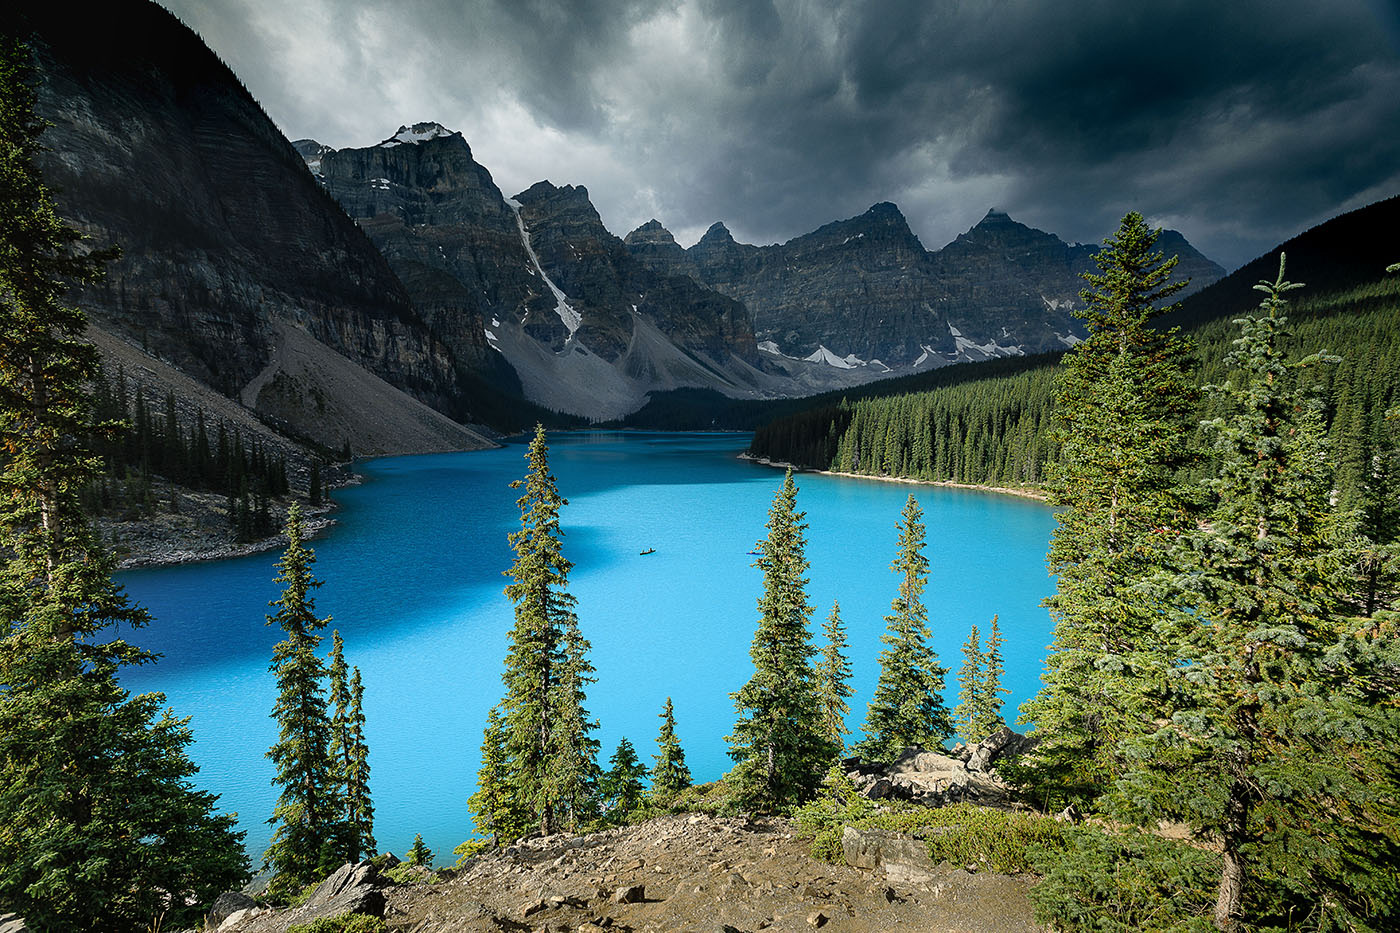 P.Thomasson Moraine Lake